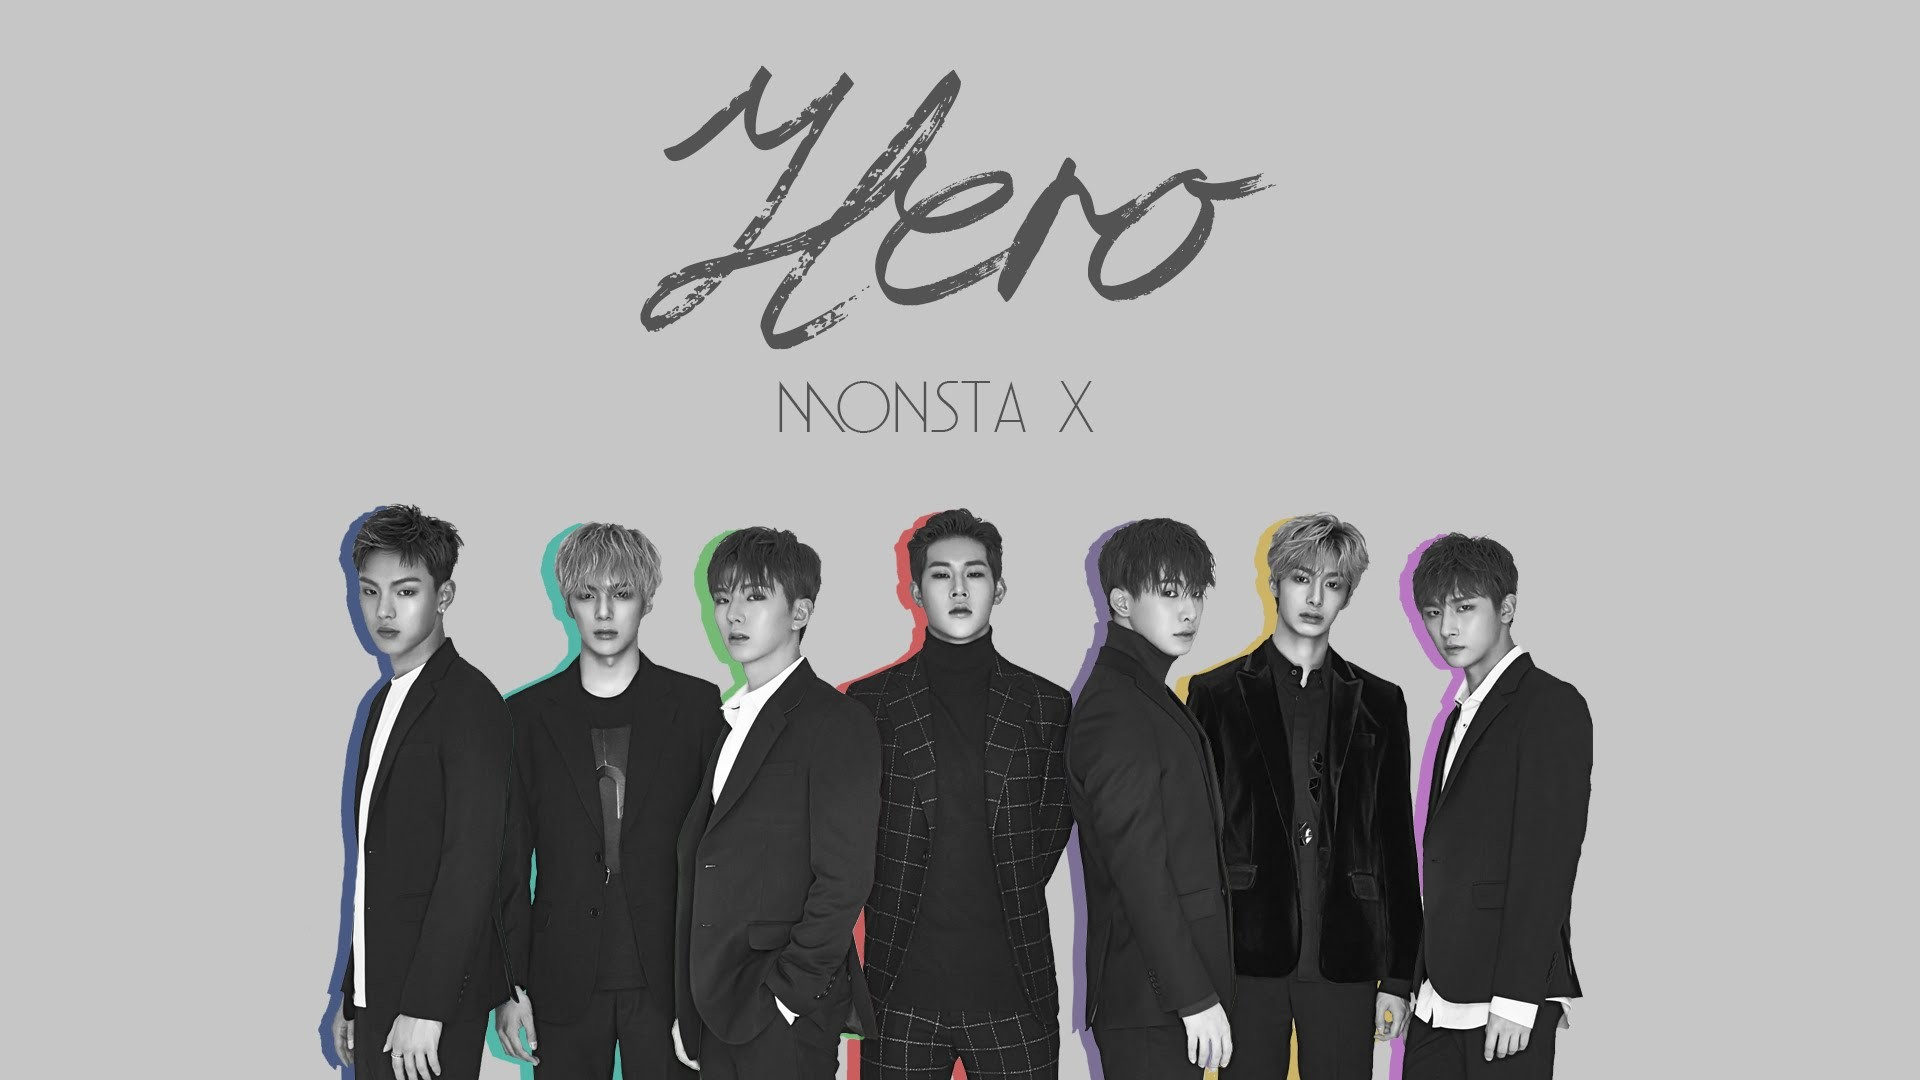 1920x1080 Get free high quality HD wallpapers monsta x desktop wallpaper